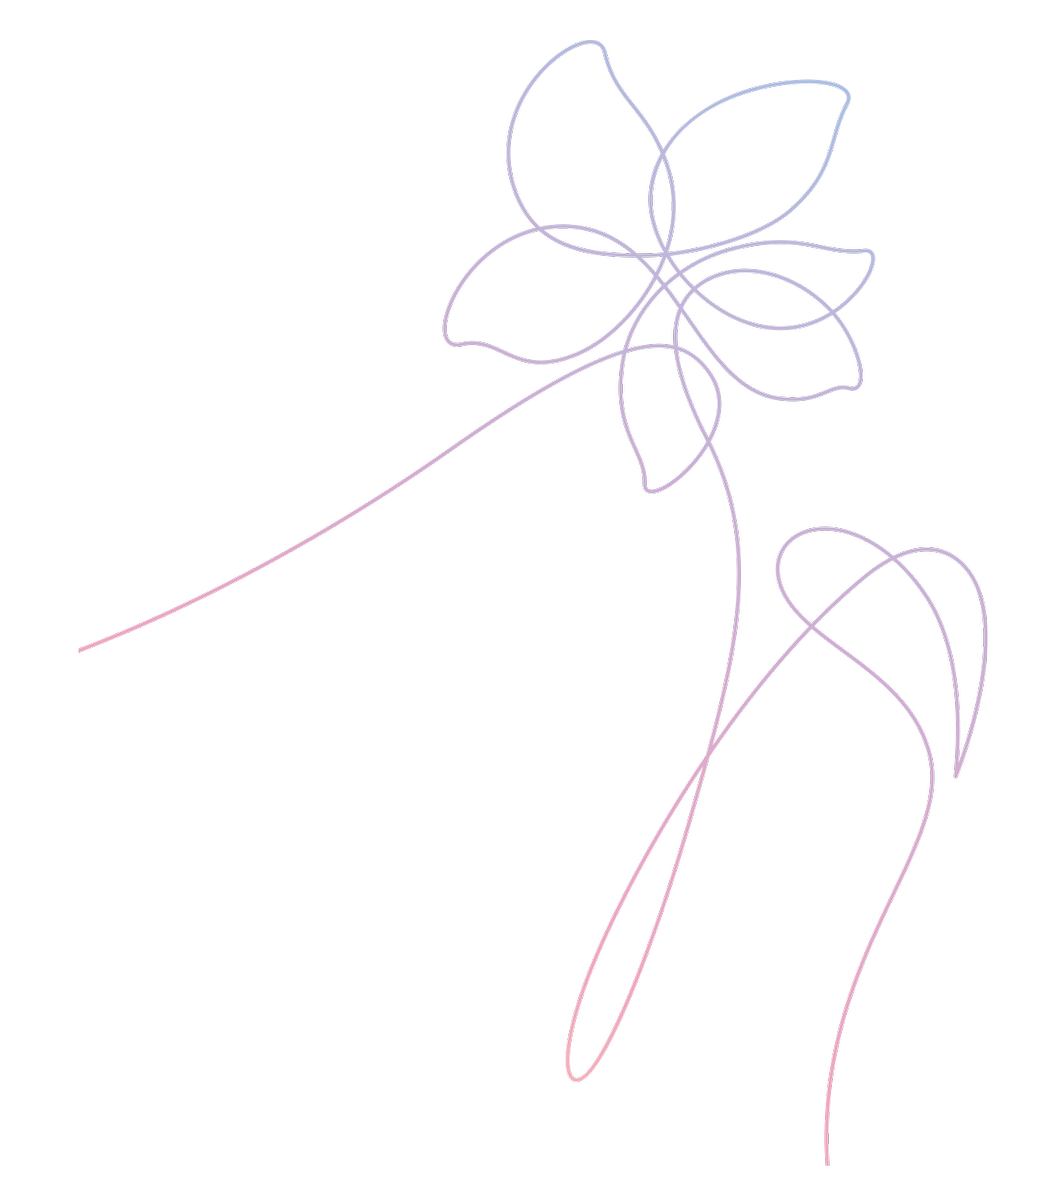 Lullabysinger on twitter background. Bts love yourself flower png svg black and white library